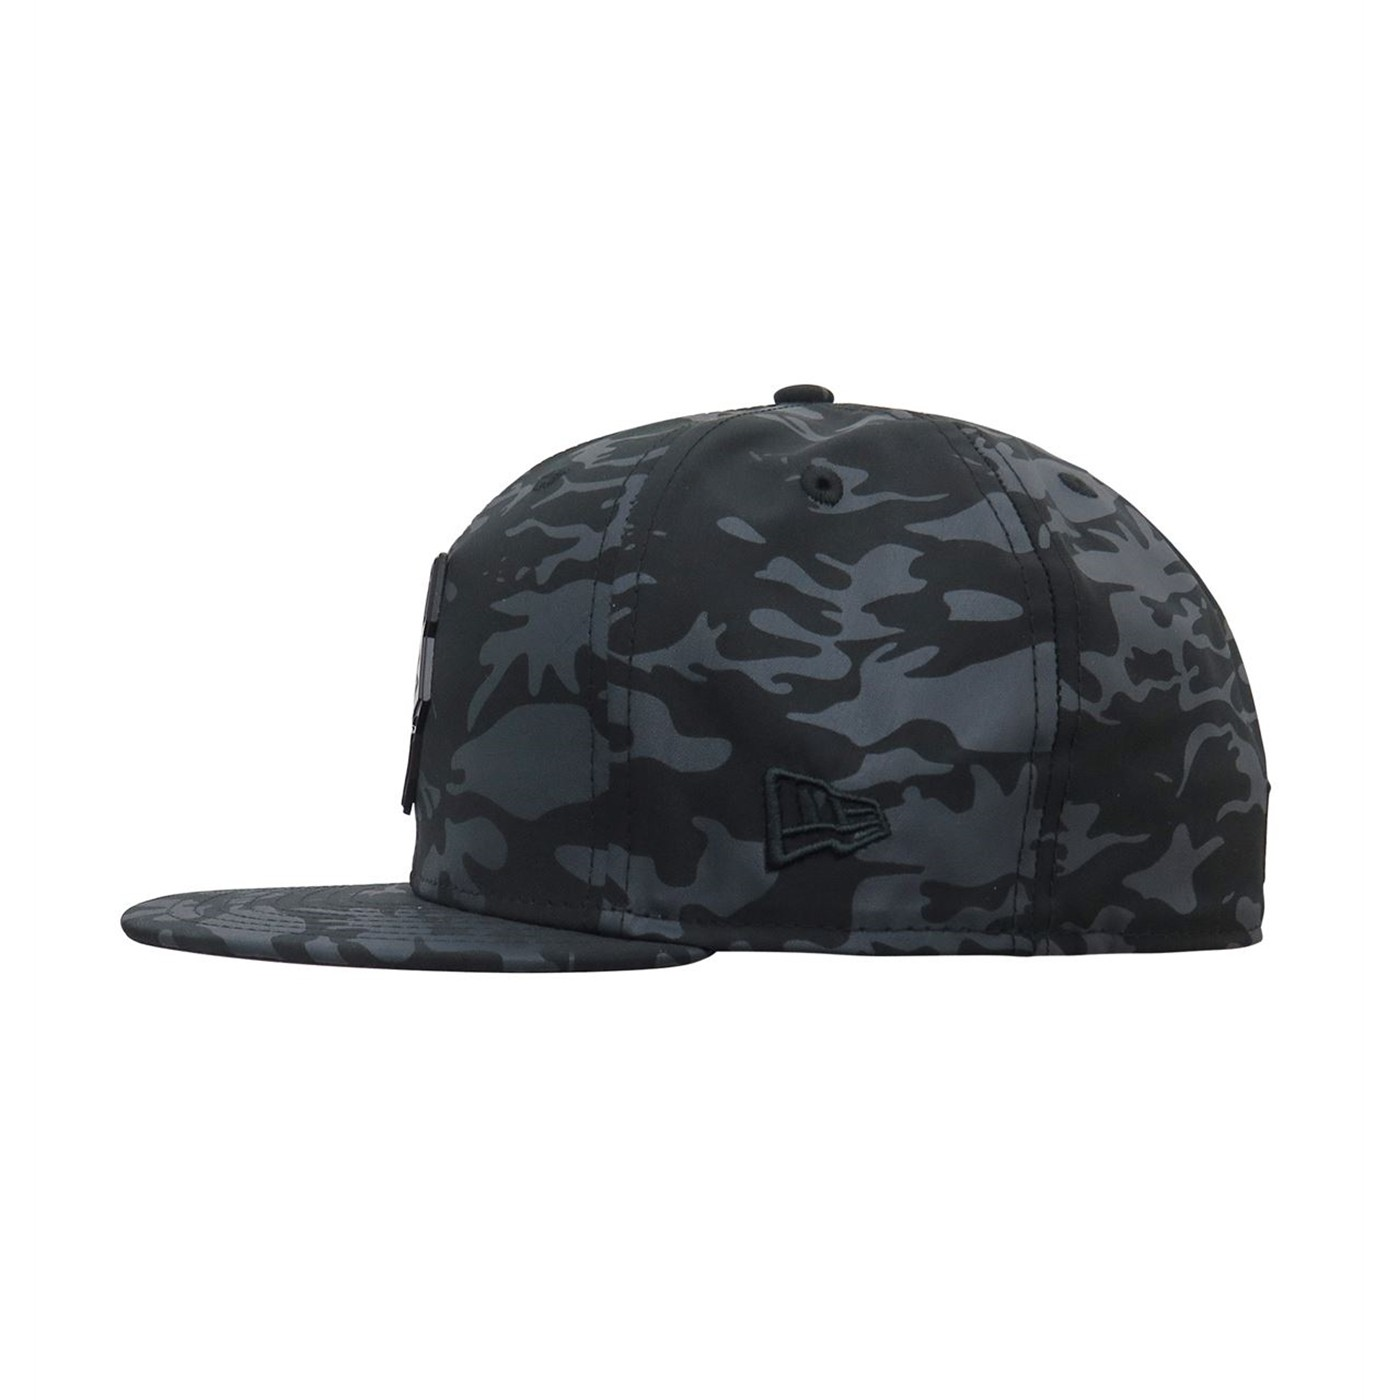 Black Panther Metal Badge with Camo 59Fifty Fitted Hat